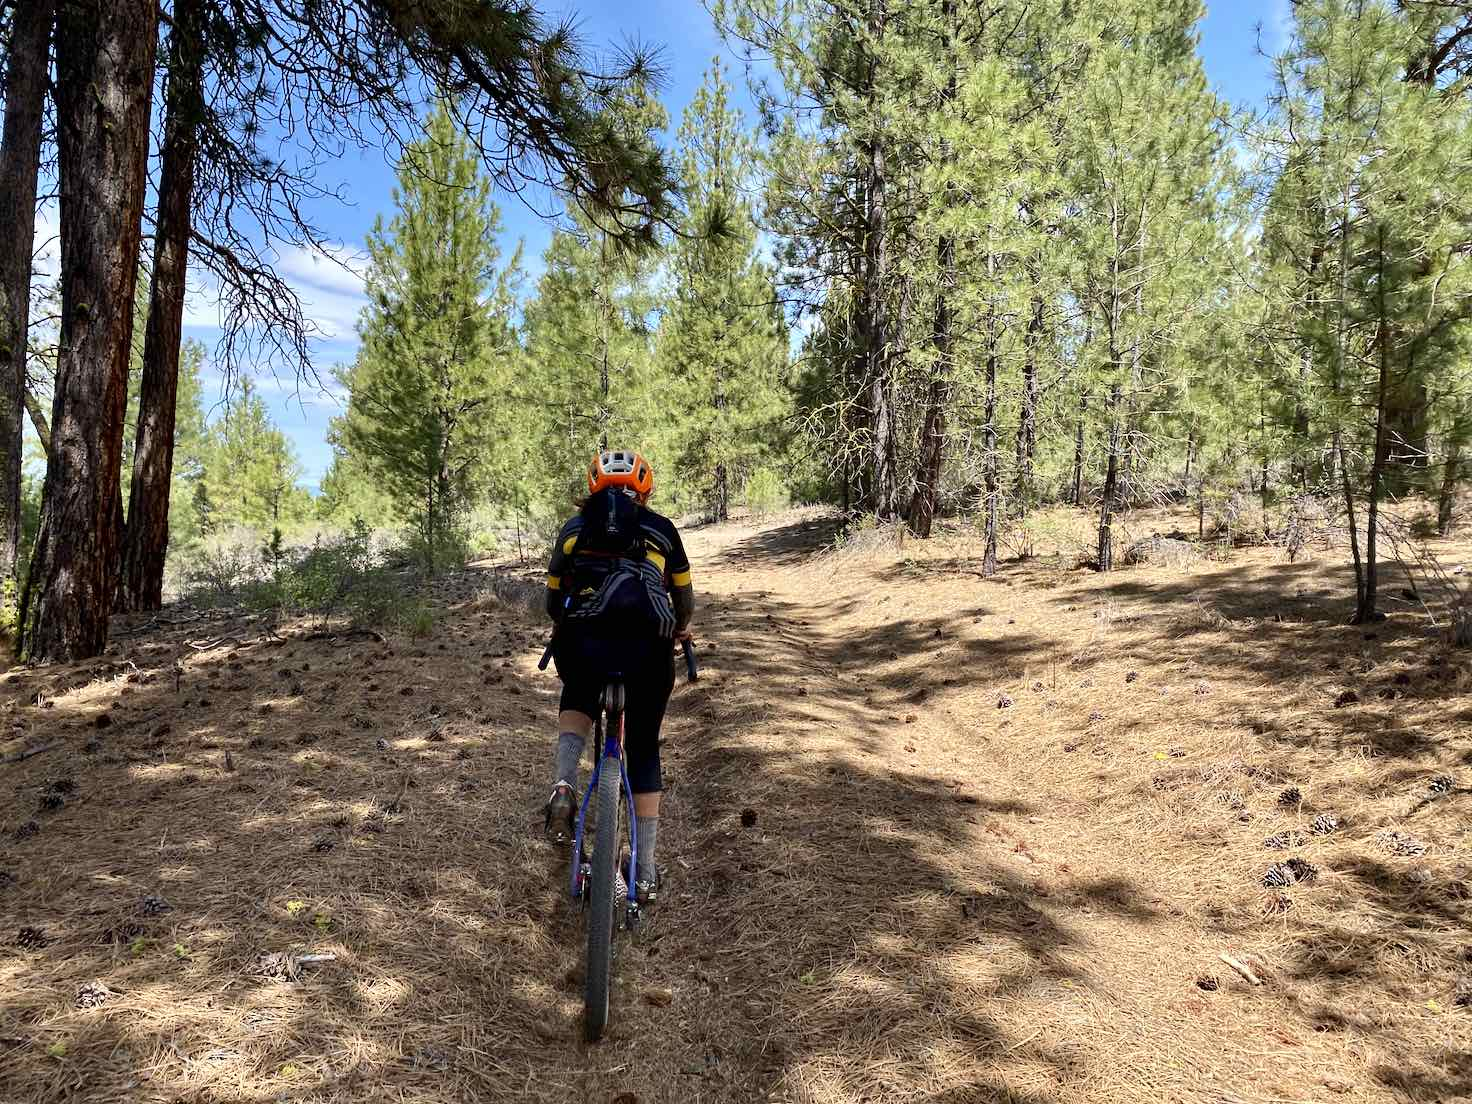 Gravel cyclist on dirt road littered with pine needles in the Winema National Forest.